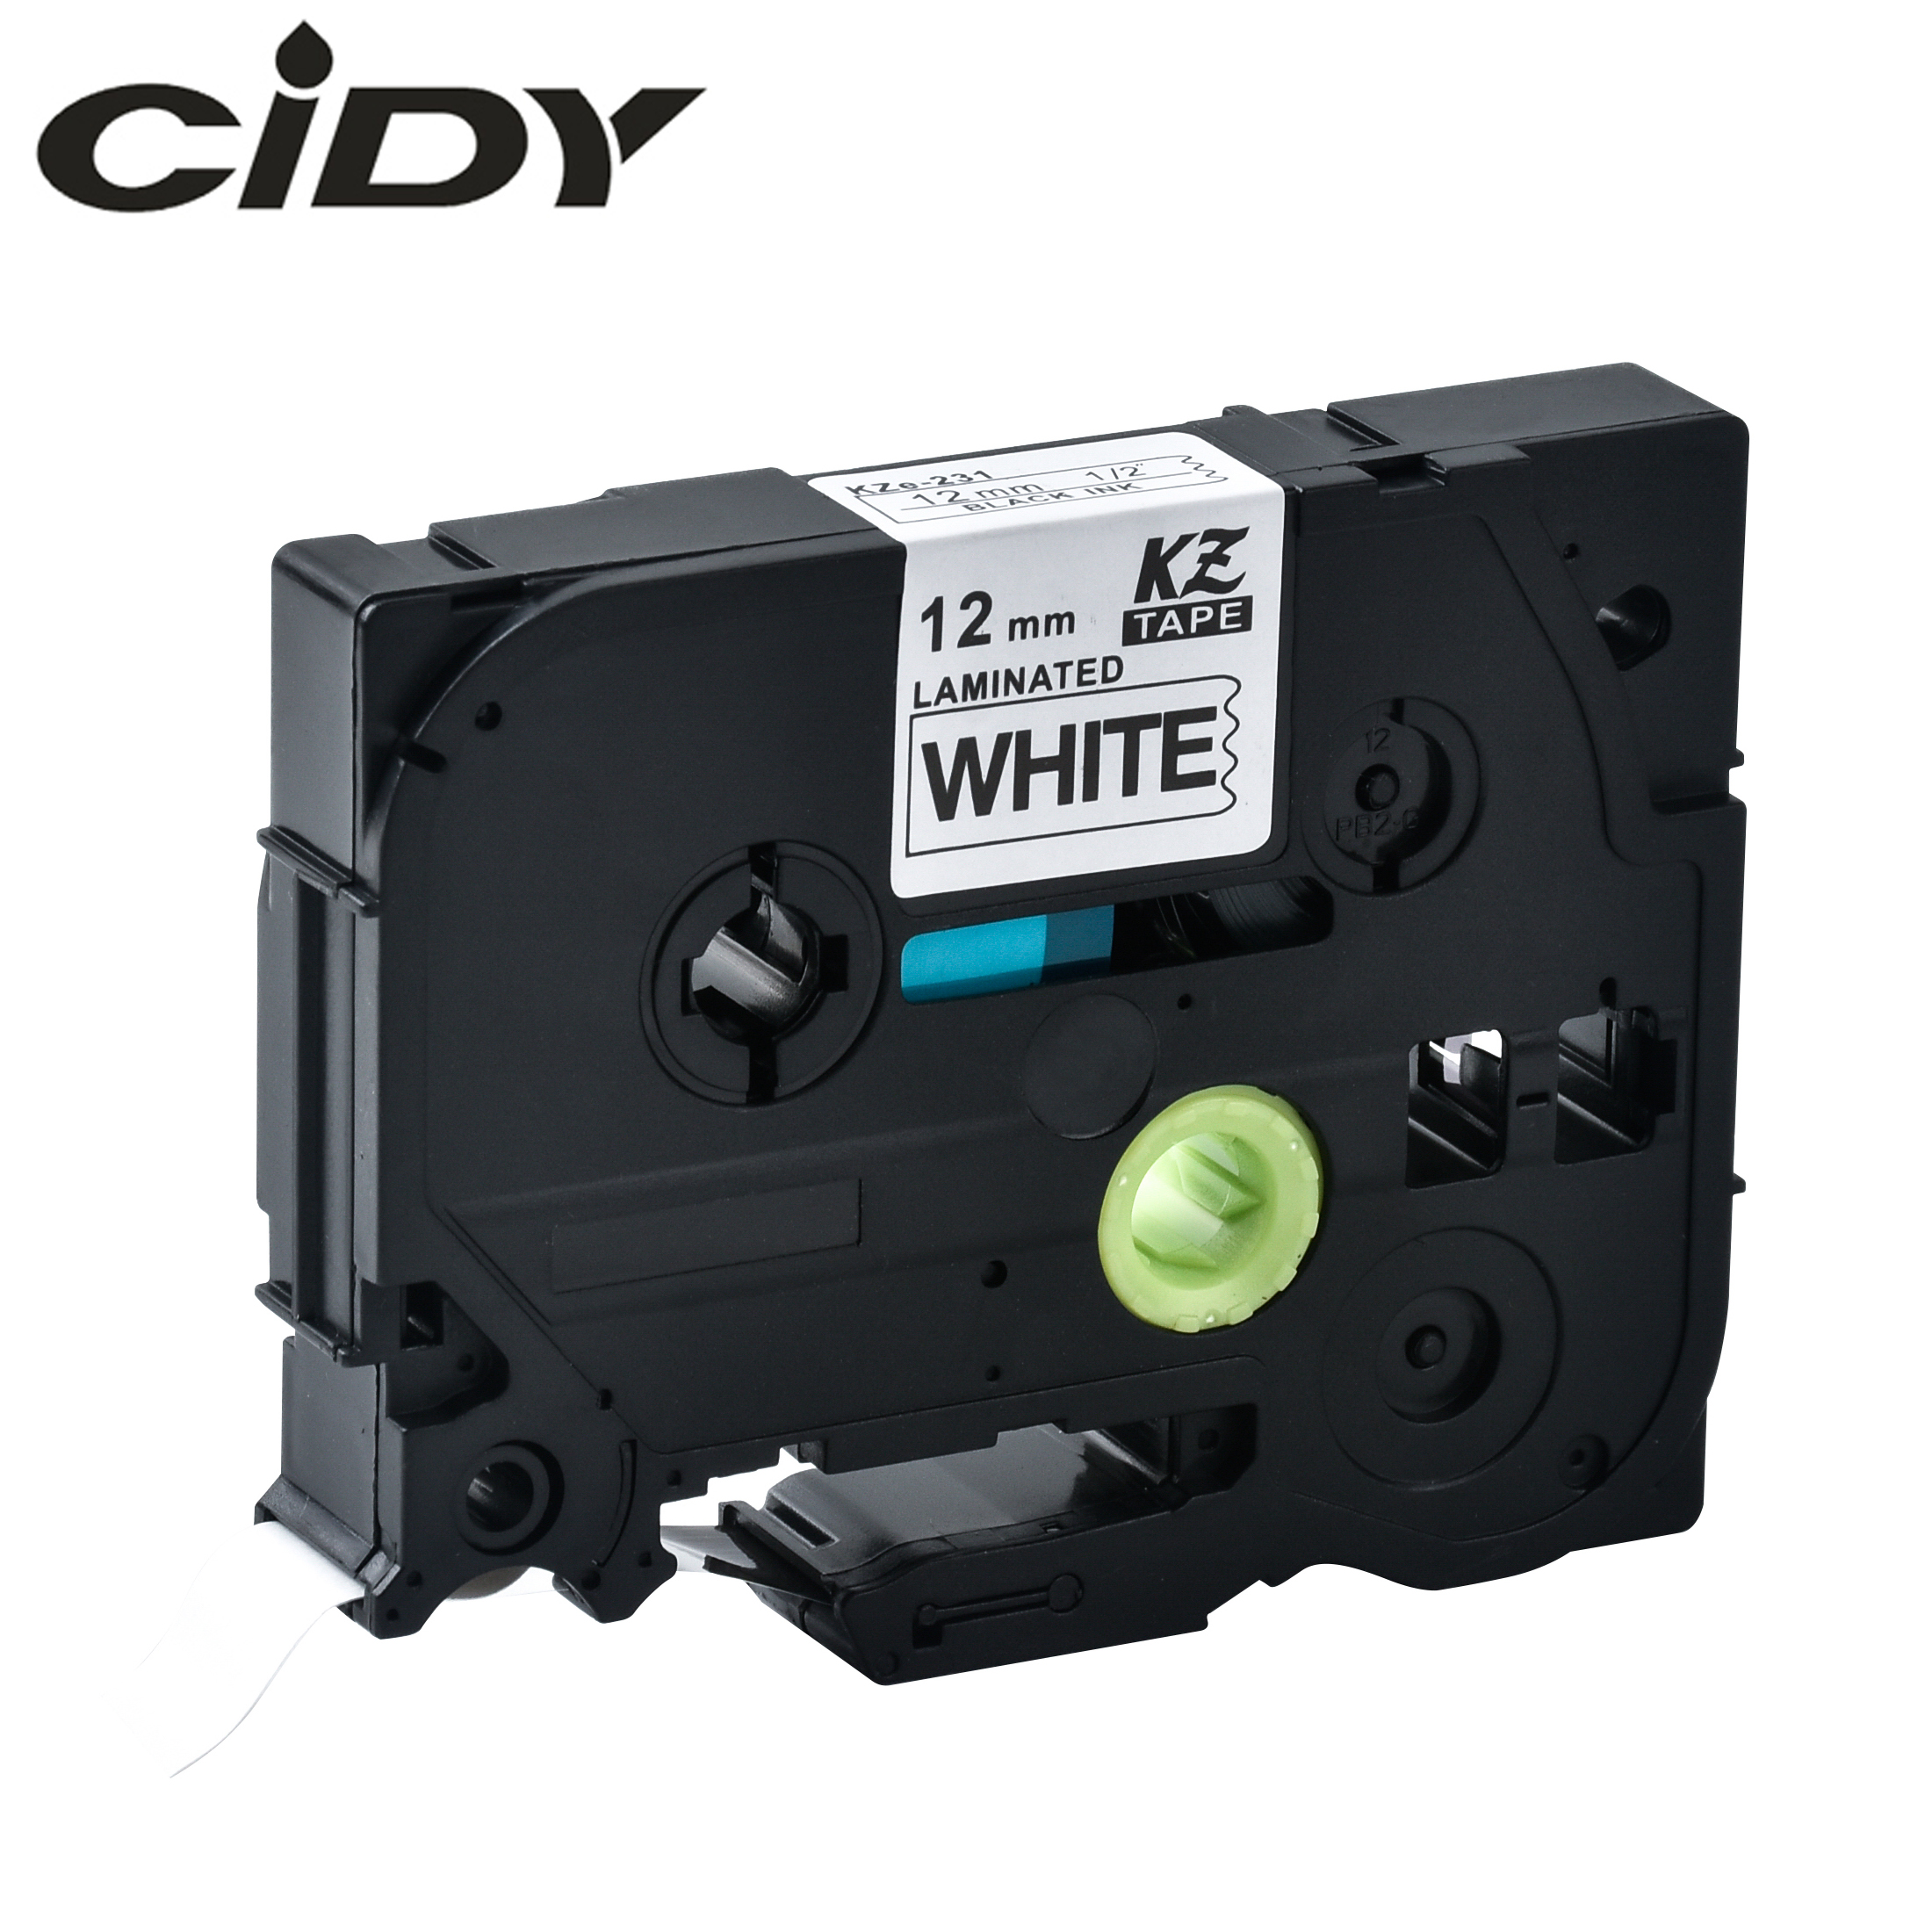 CIDY TZ231 TZ 231 TZe Laminated Strong Adhesive tz-231 tze-231 Labels Tape P Touch black on white Compatible For Brother